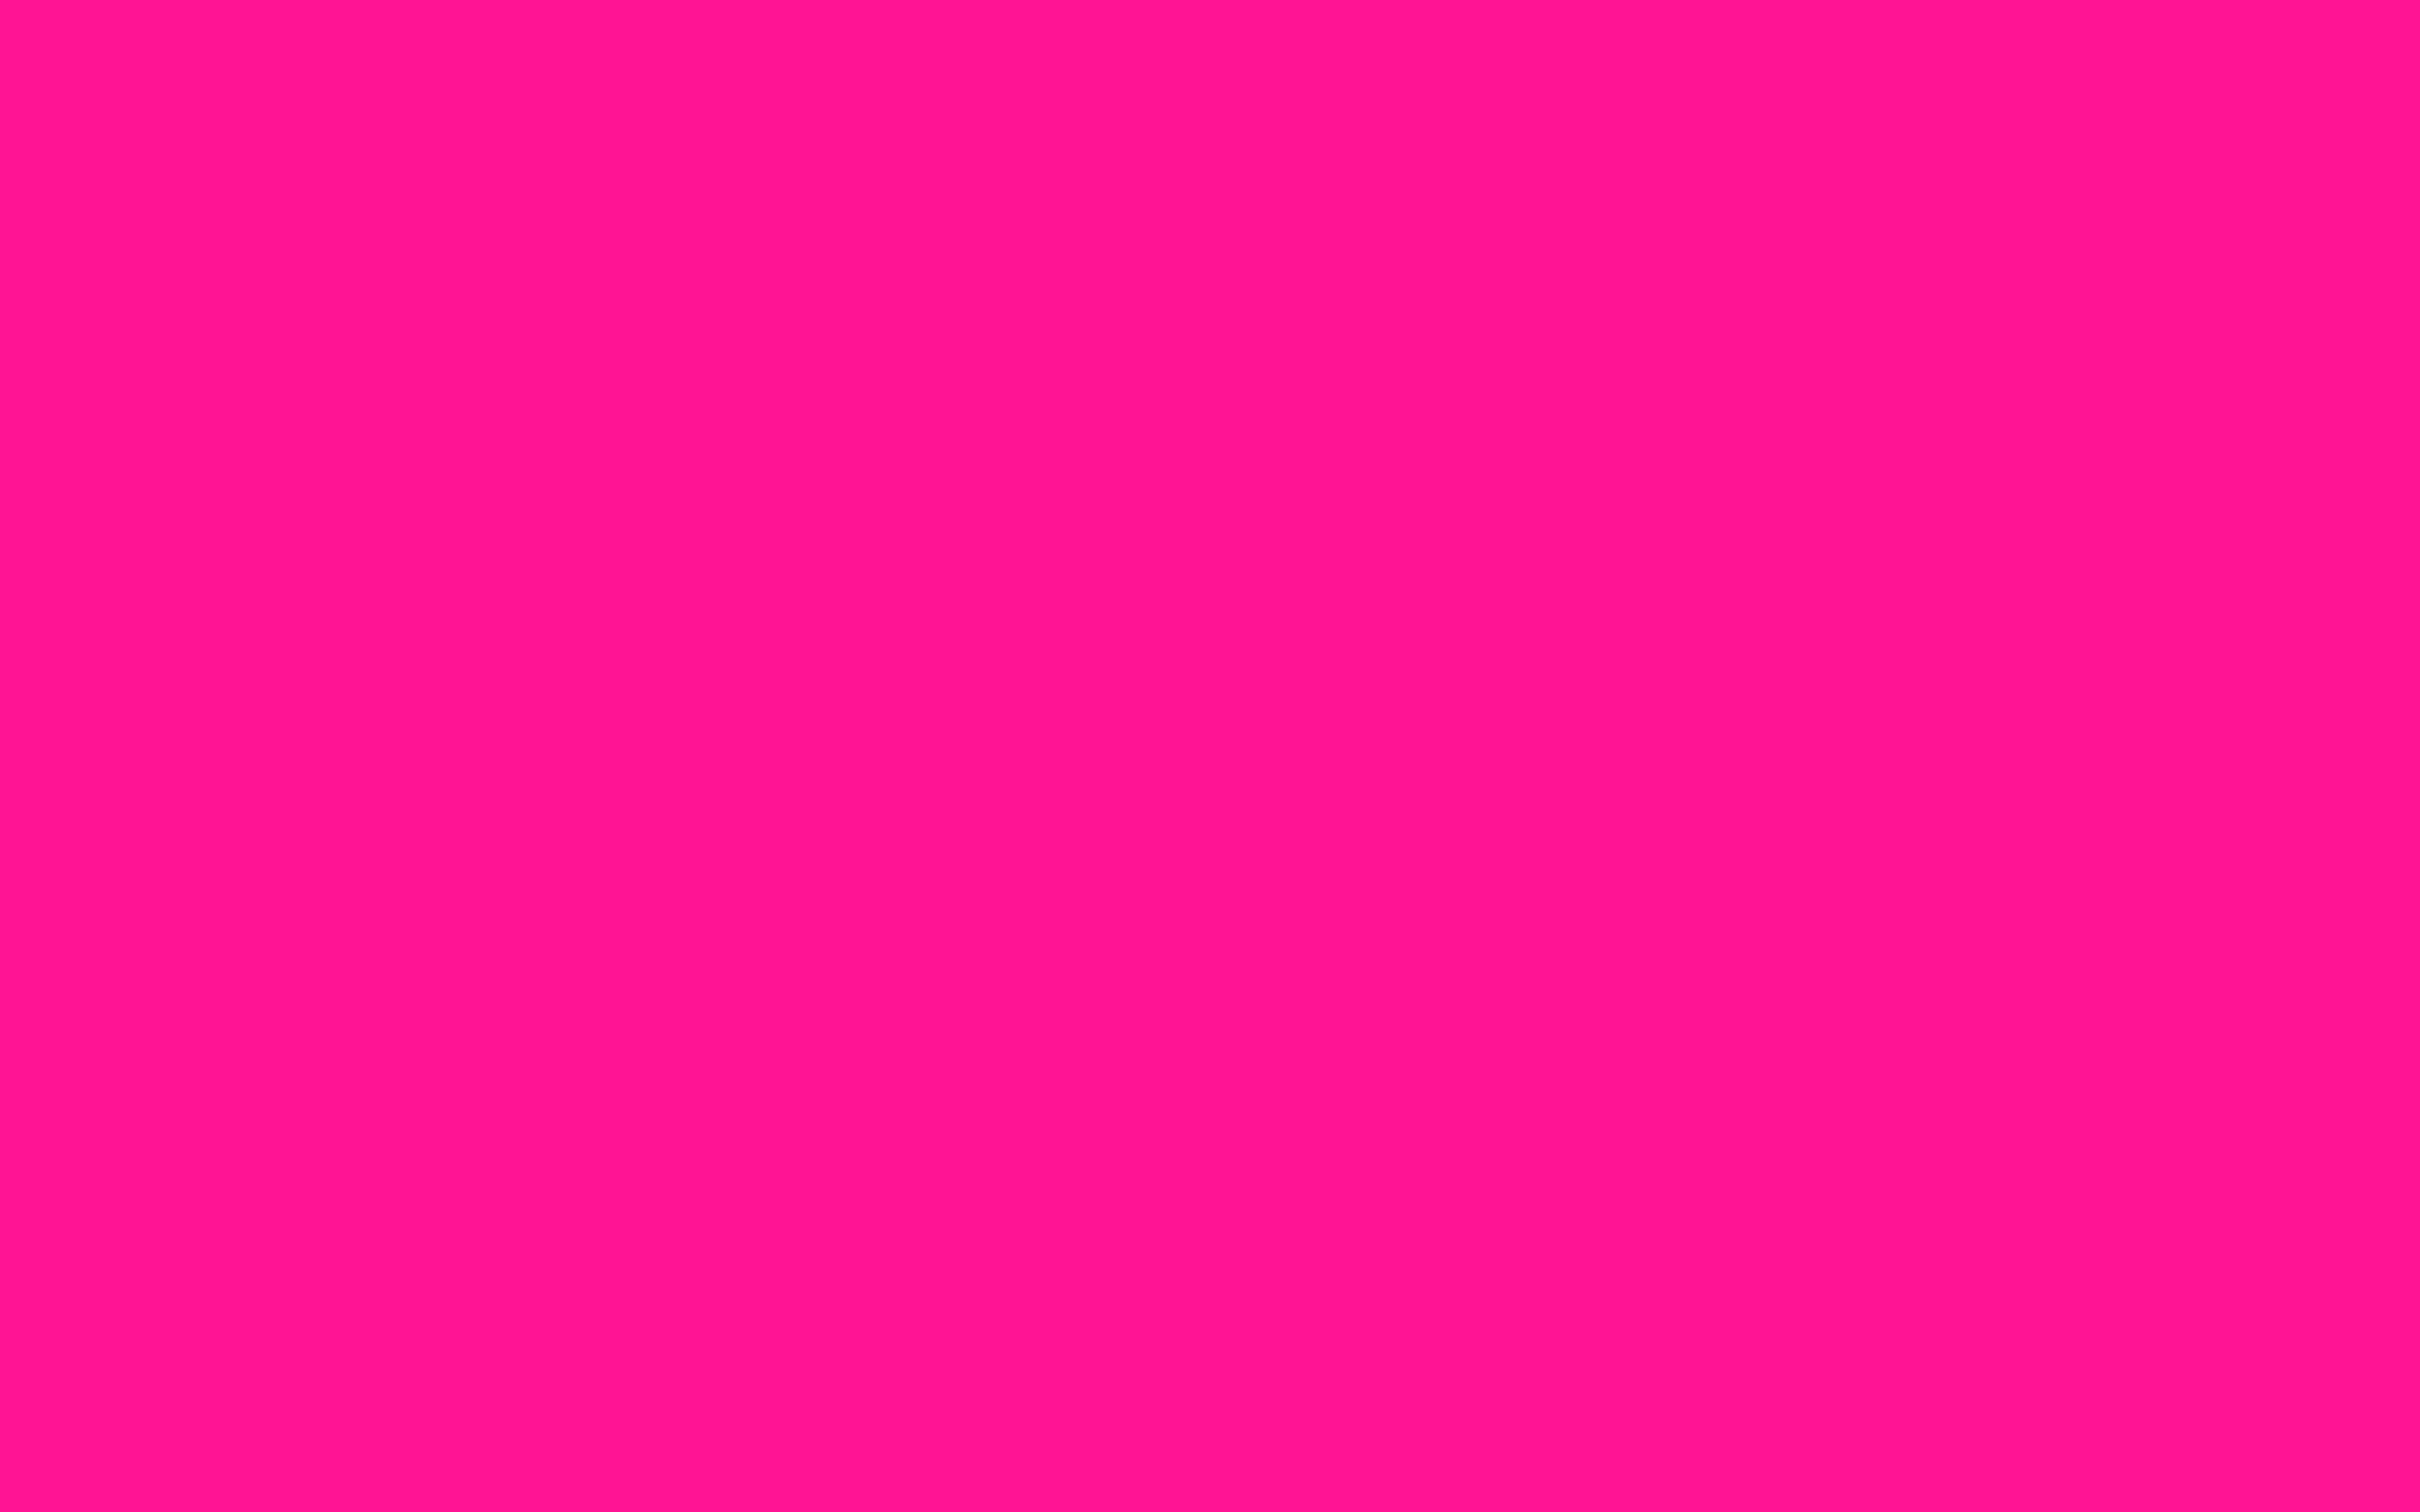 Neon Pink and Black 2880x1800